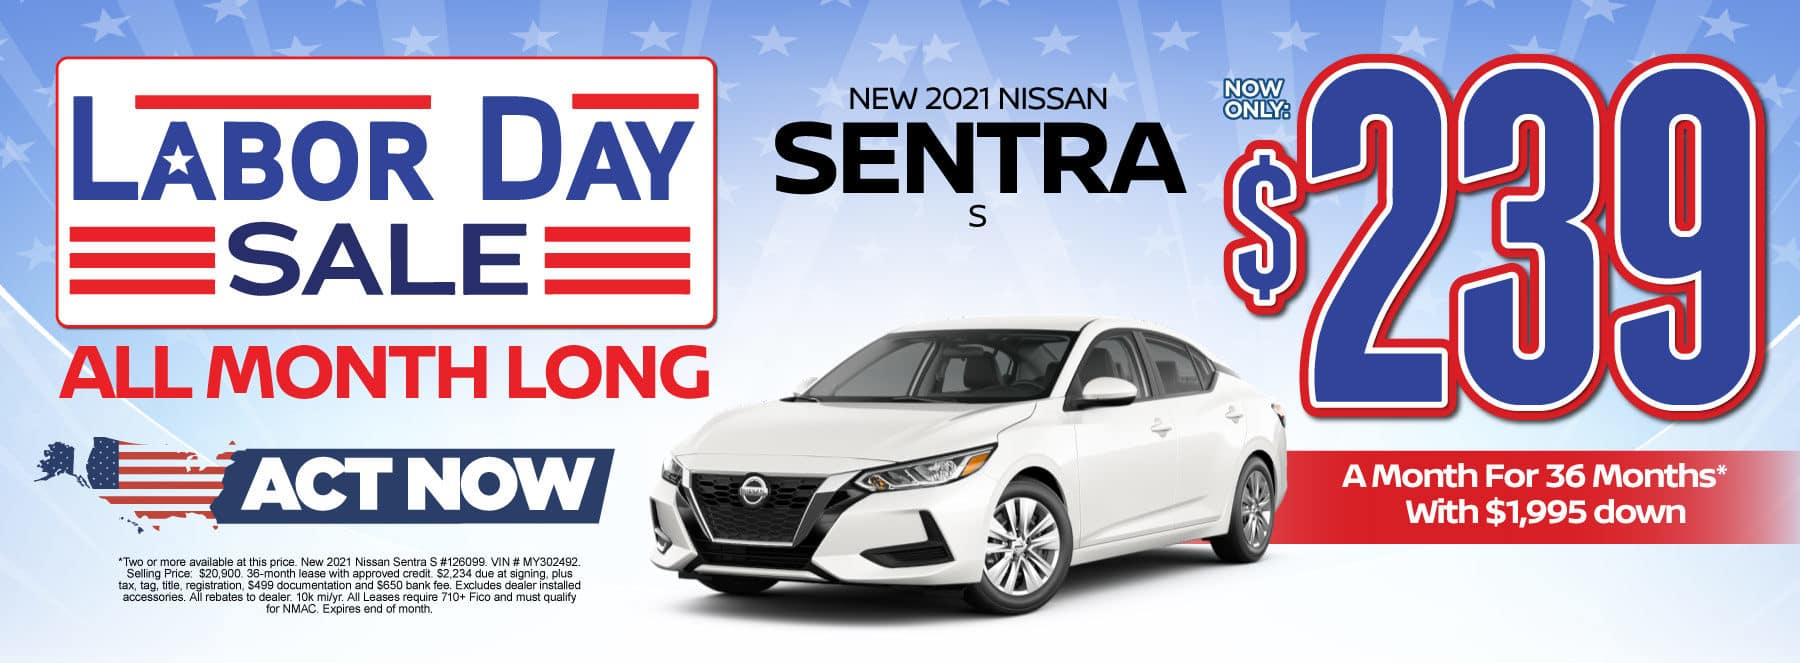 New 2021 Nissan Sentra - Now only $239 a month - Act Now